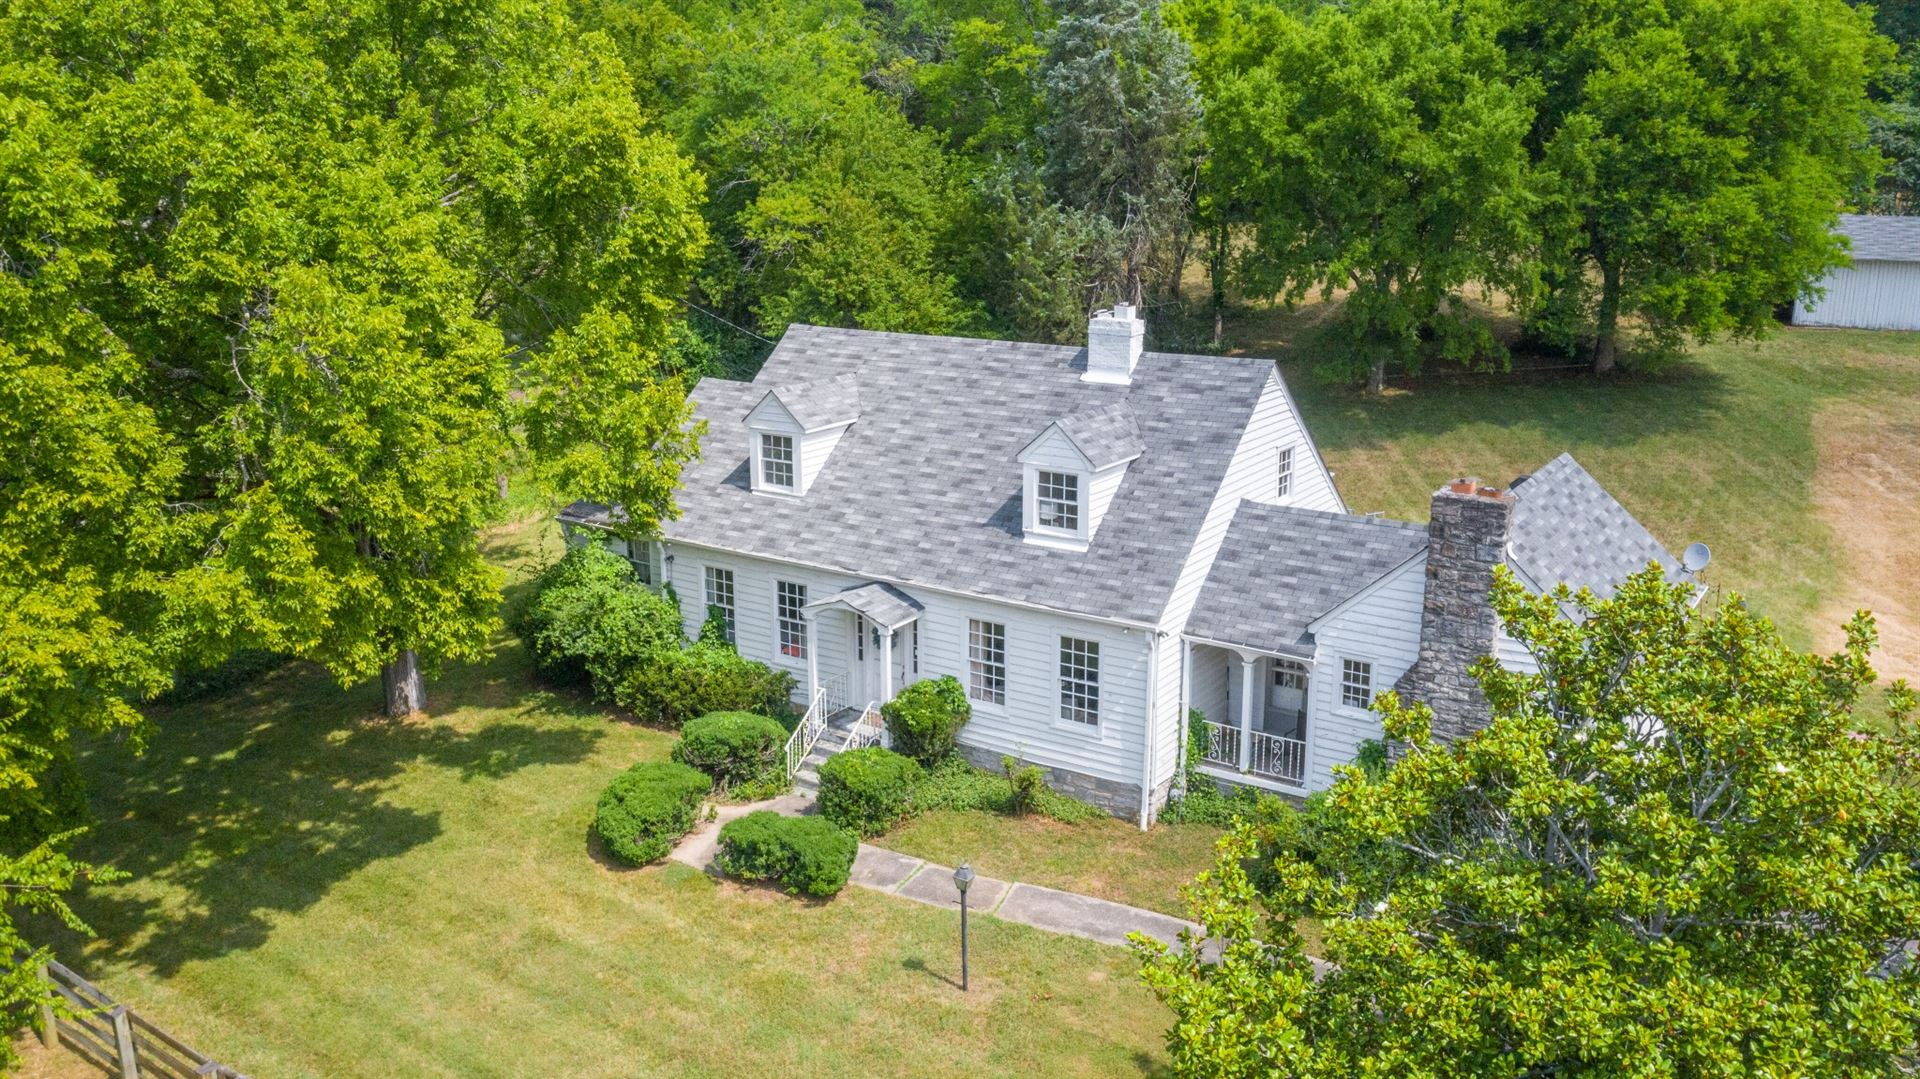 806 Old Hickory Blvd, Brentwood, TN 37027 - MLS#: 2273839